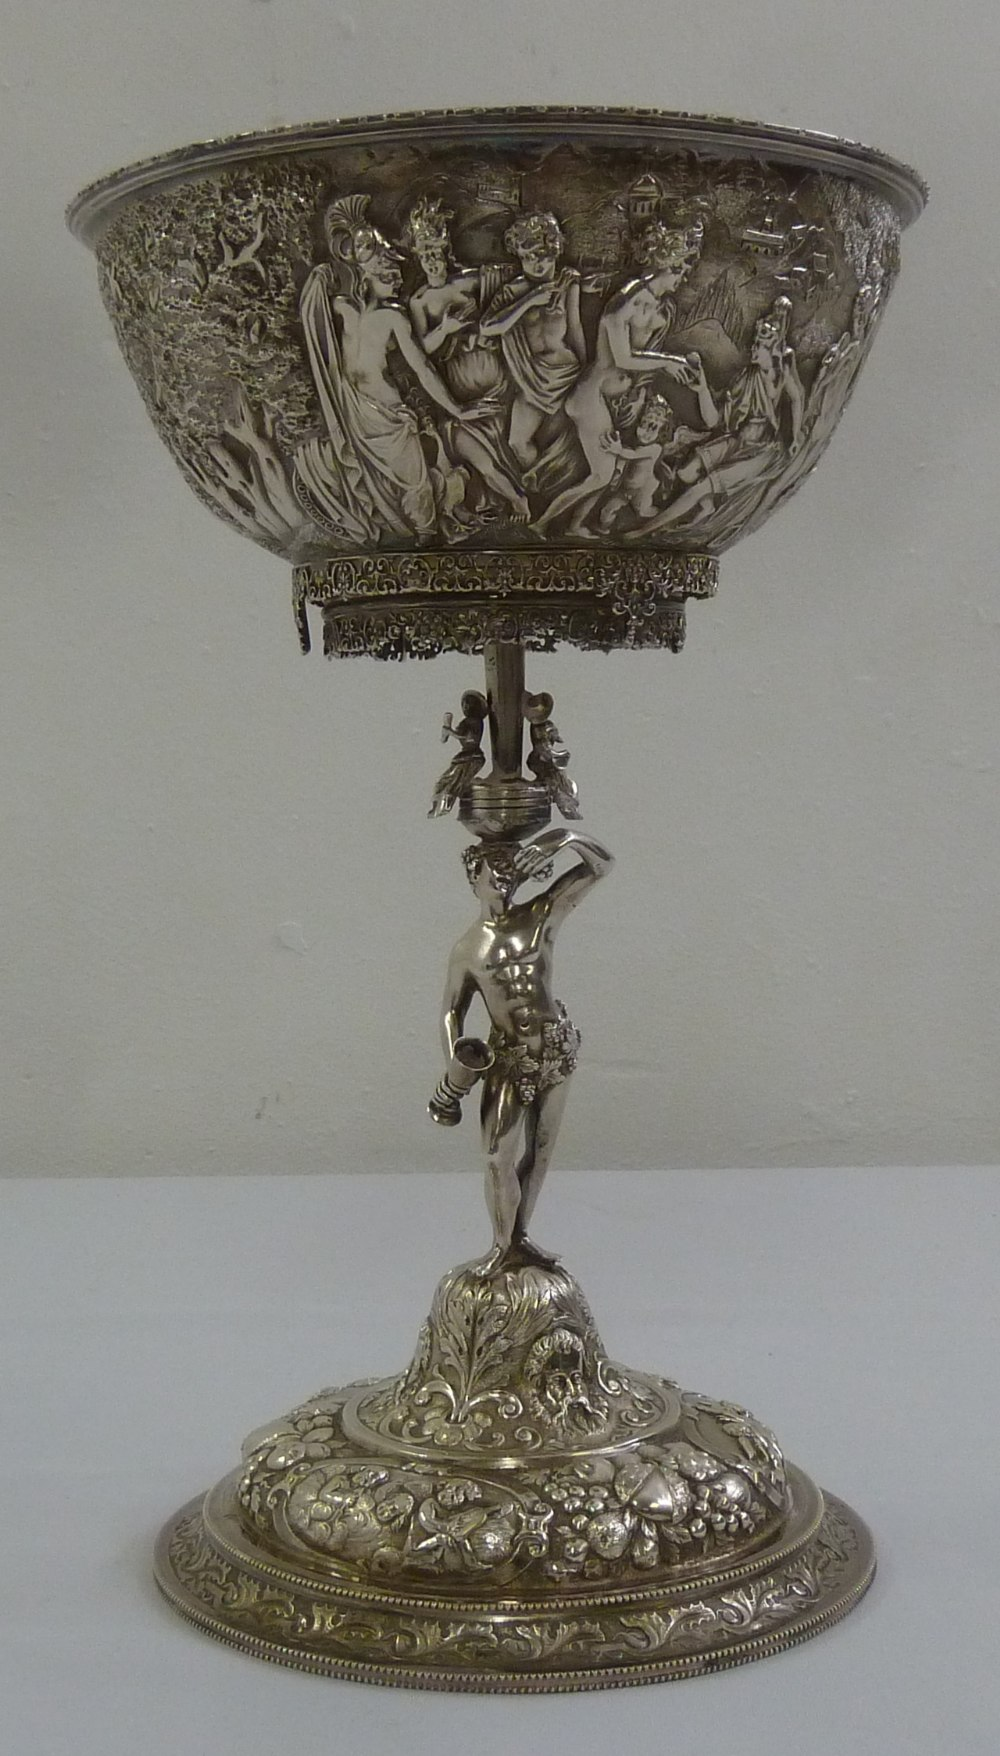 Lot 391 - A 19th century Continental white metal centrepiece the bowl heavily chased with classical figures